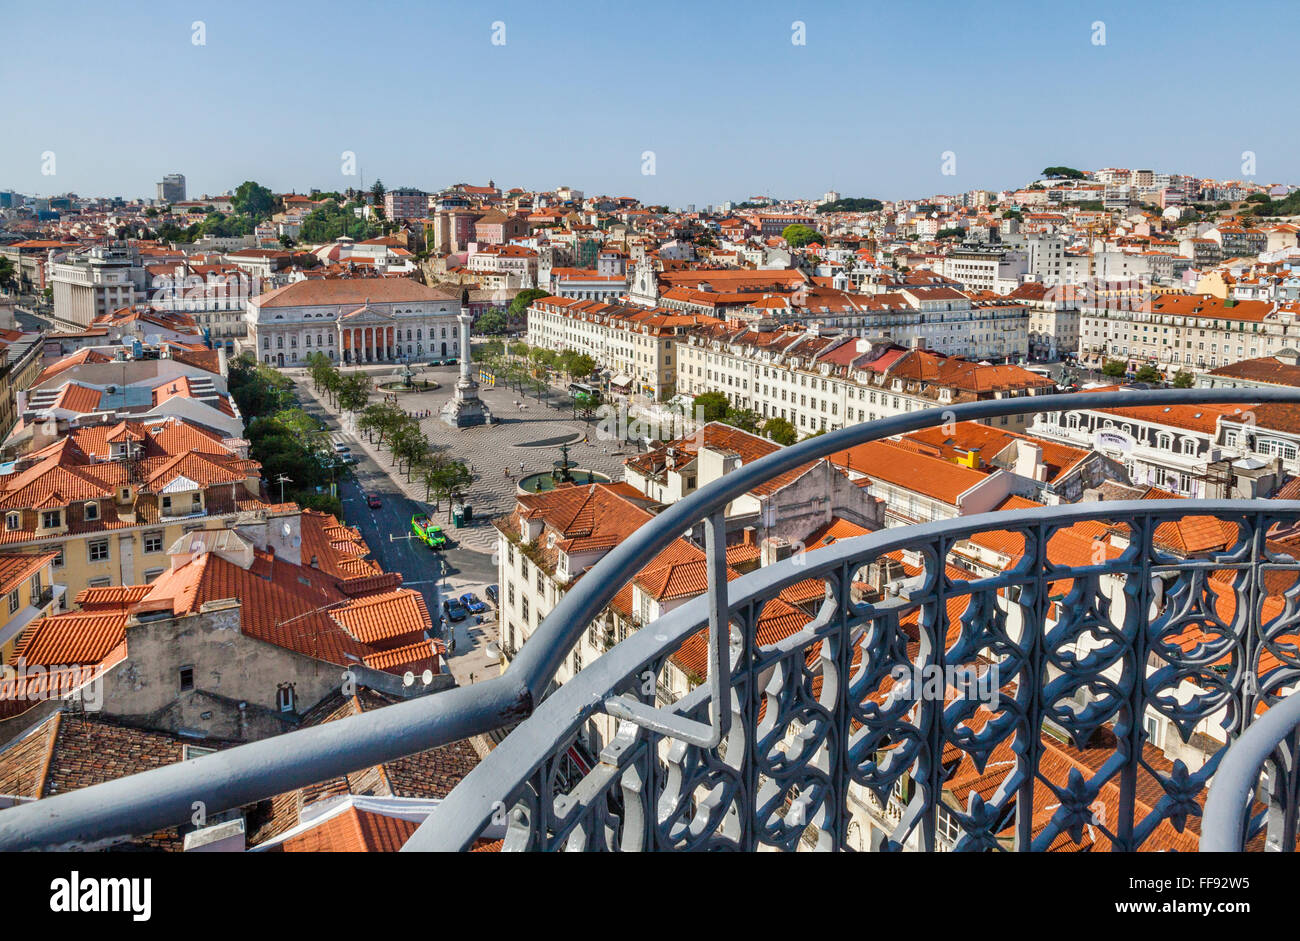 Portugal, Lisbon, view of Pedro IV Square from the upper level terrace of Santa Justa Lift - Stock Image